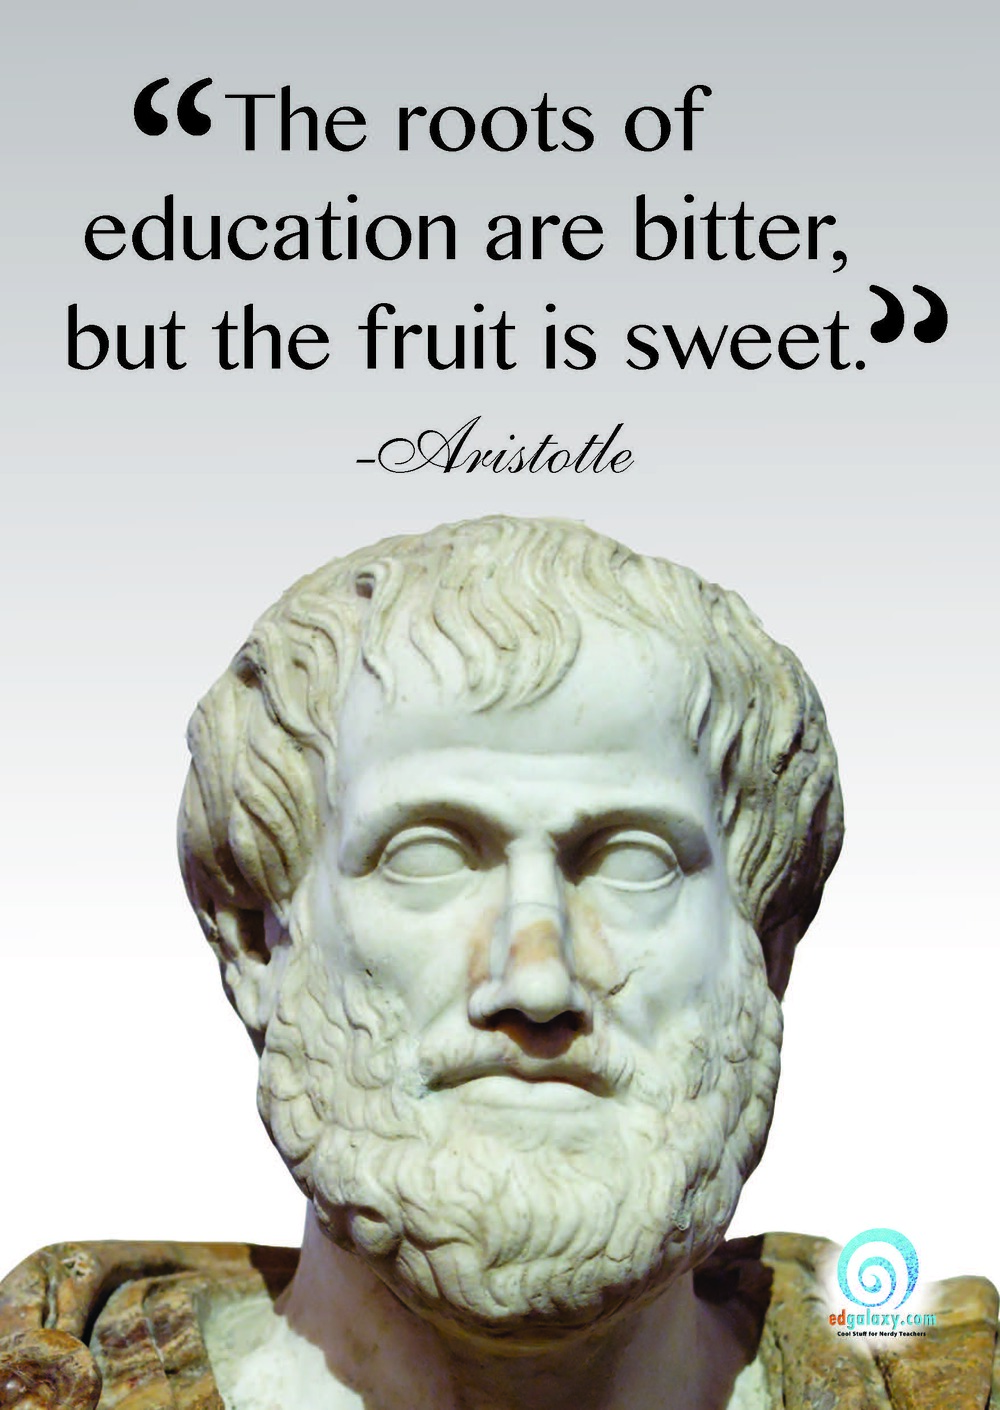 Education Quotes Posters 2 jpg_Page_06.jpg